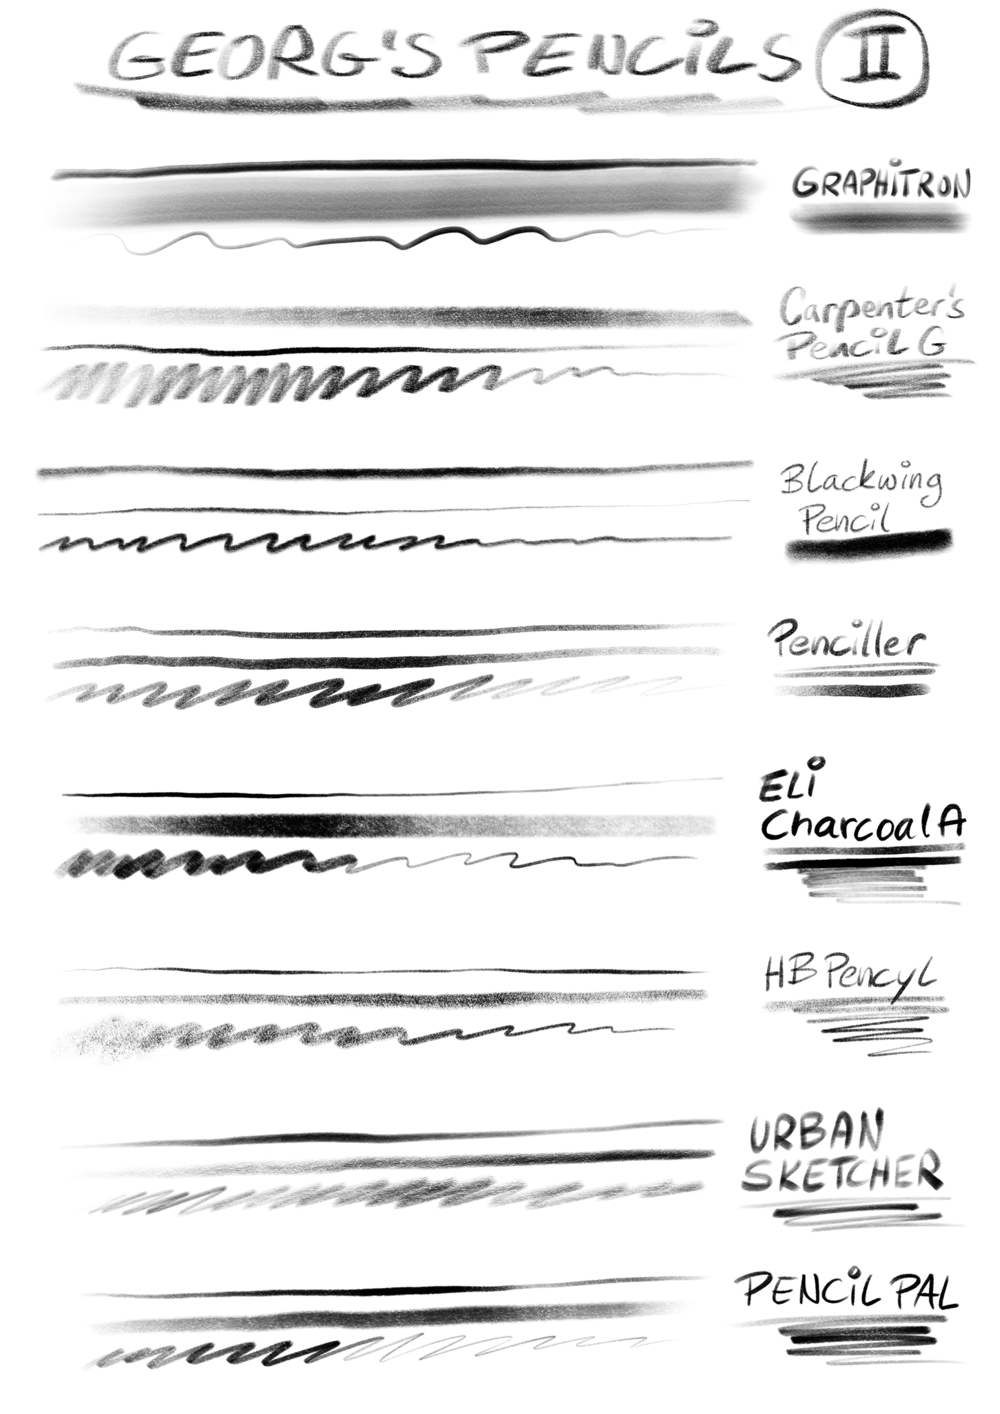 GvW PENCILS II demo 02_small.png